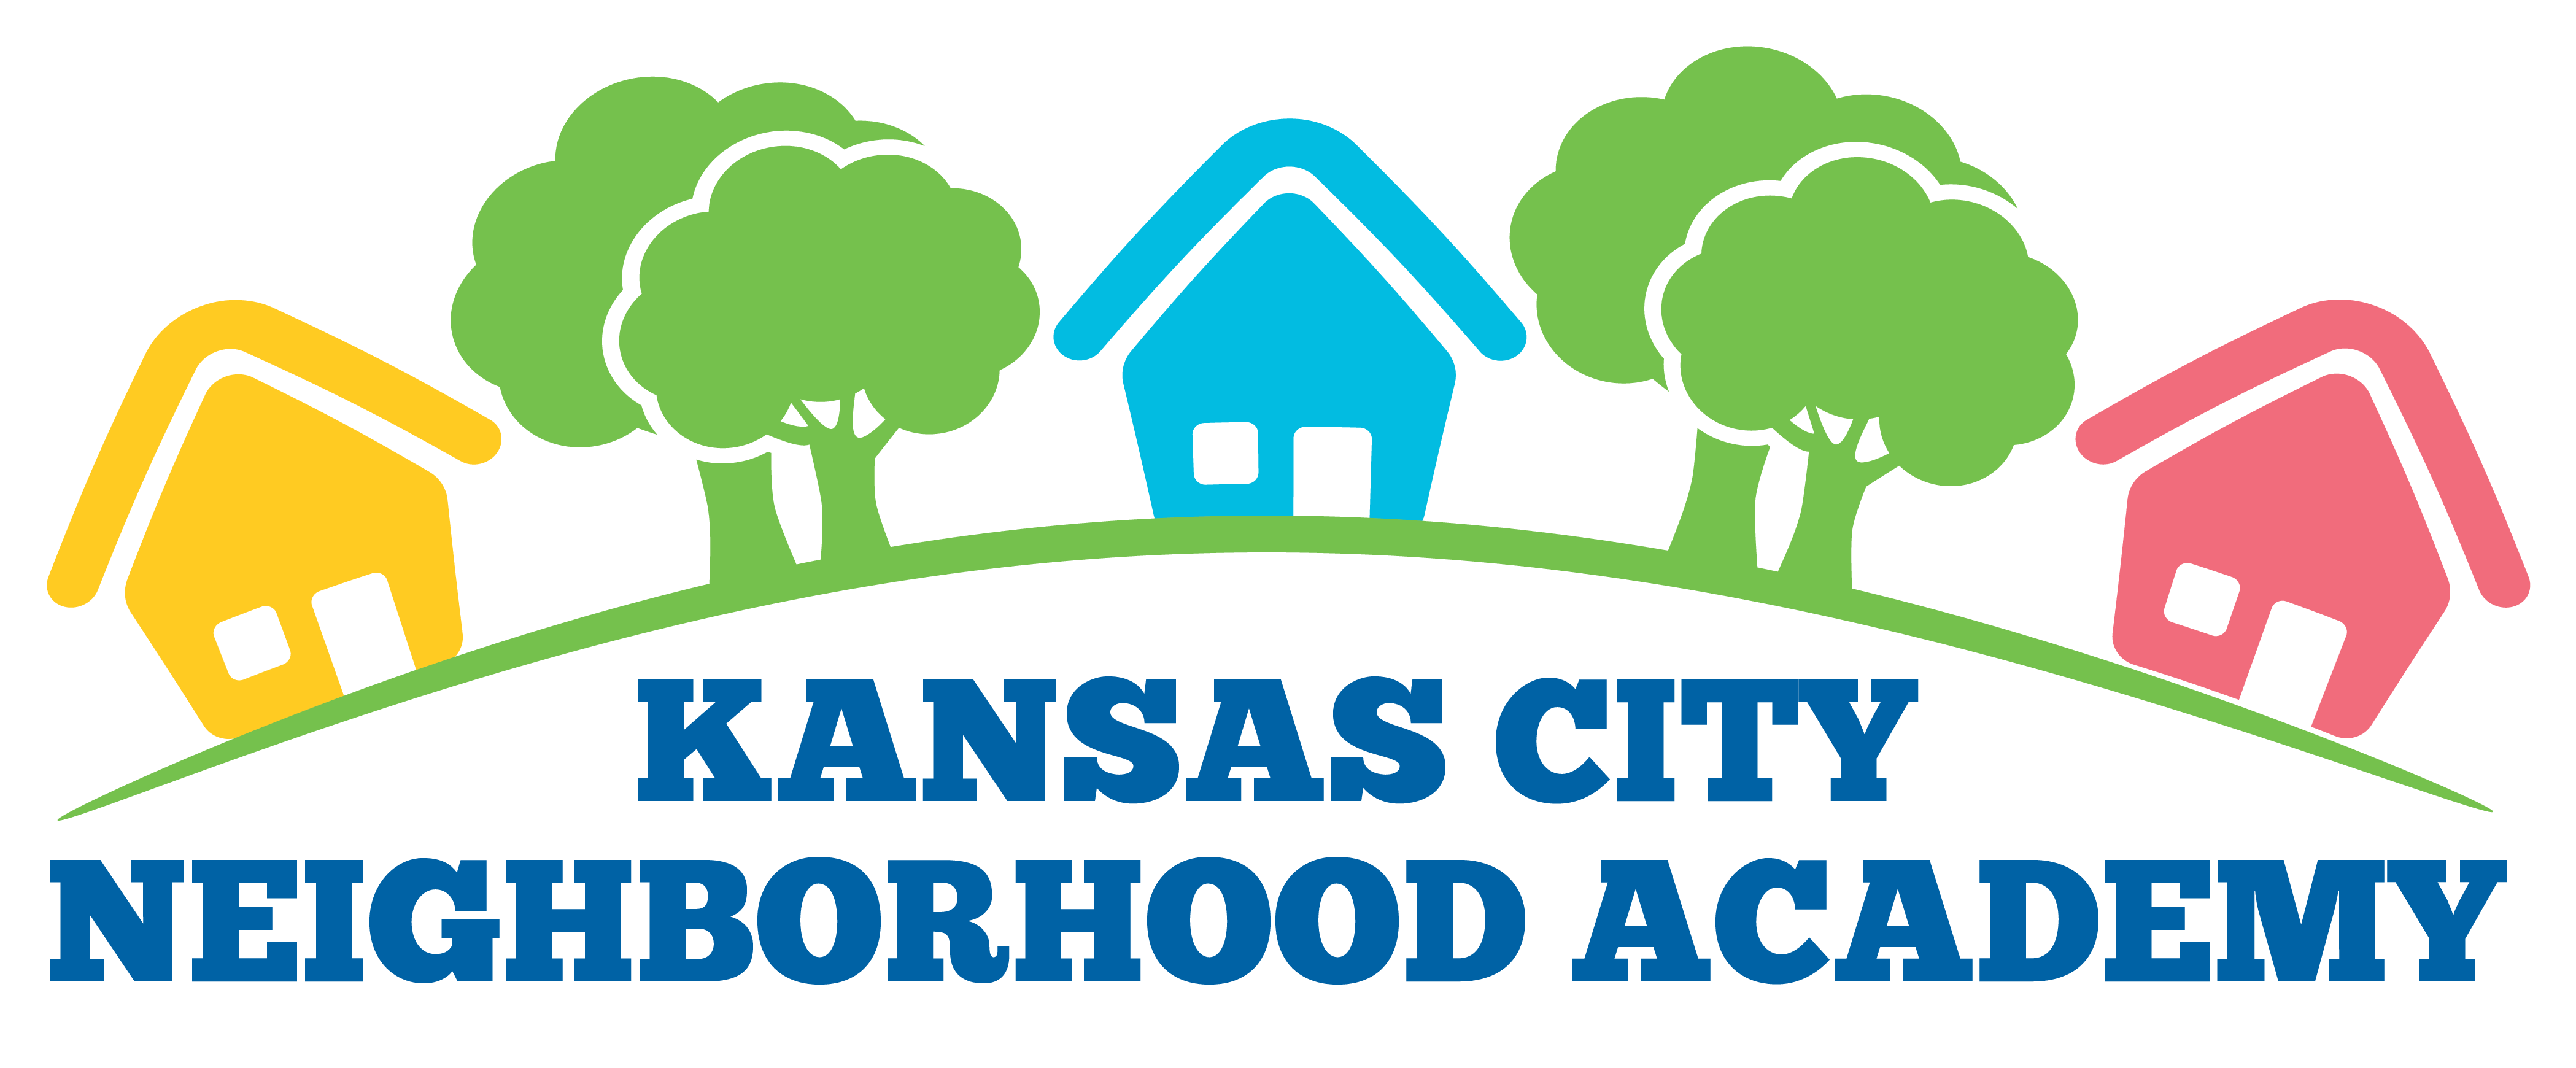 Community Meetings to Help Shape Kansas City Neighborhood Academy - City Neighborhood PNG